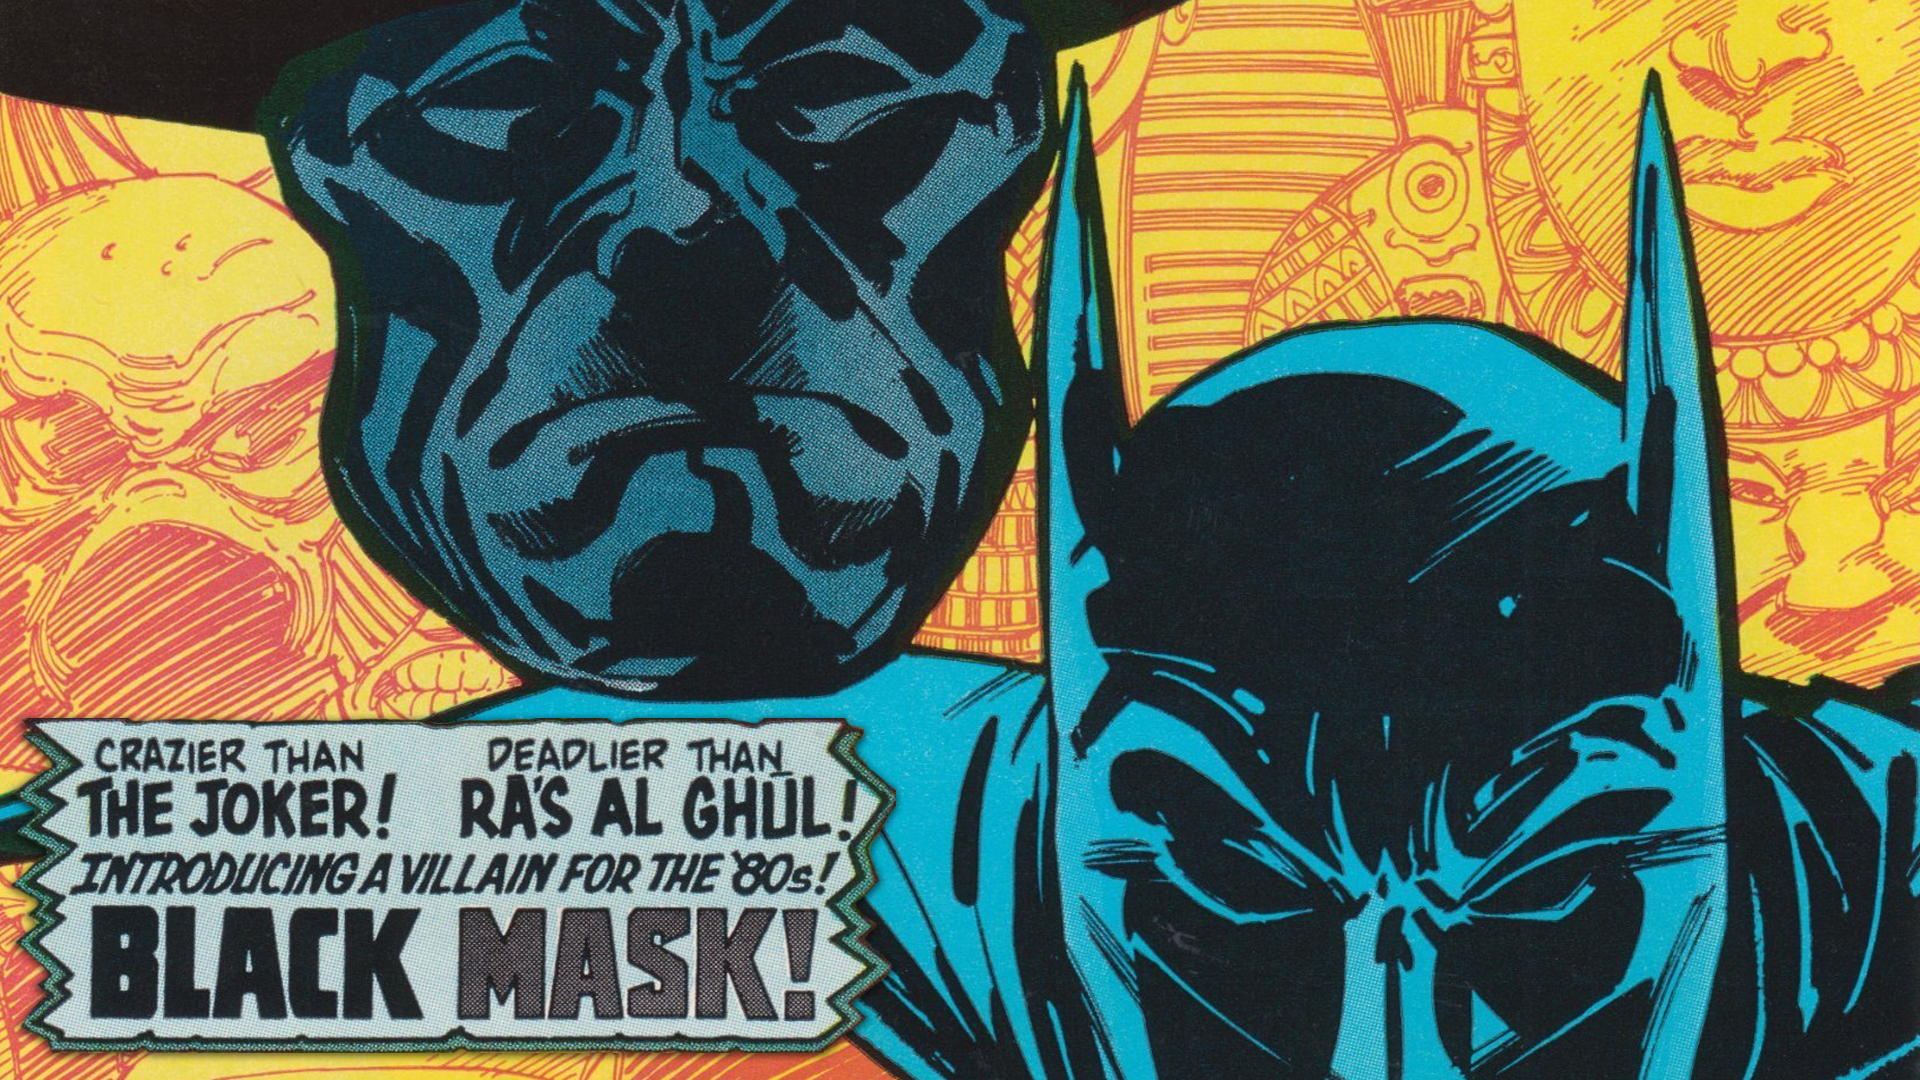 Black Mask's First Appearance - MAJOR ISSUES screen capture